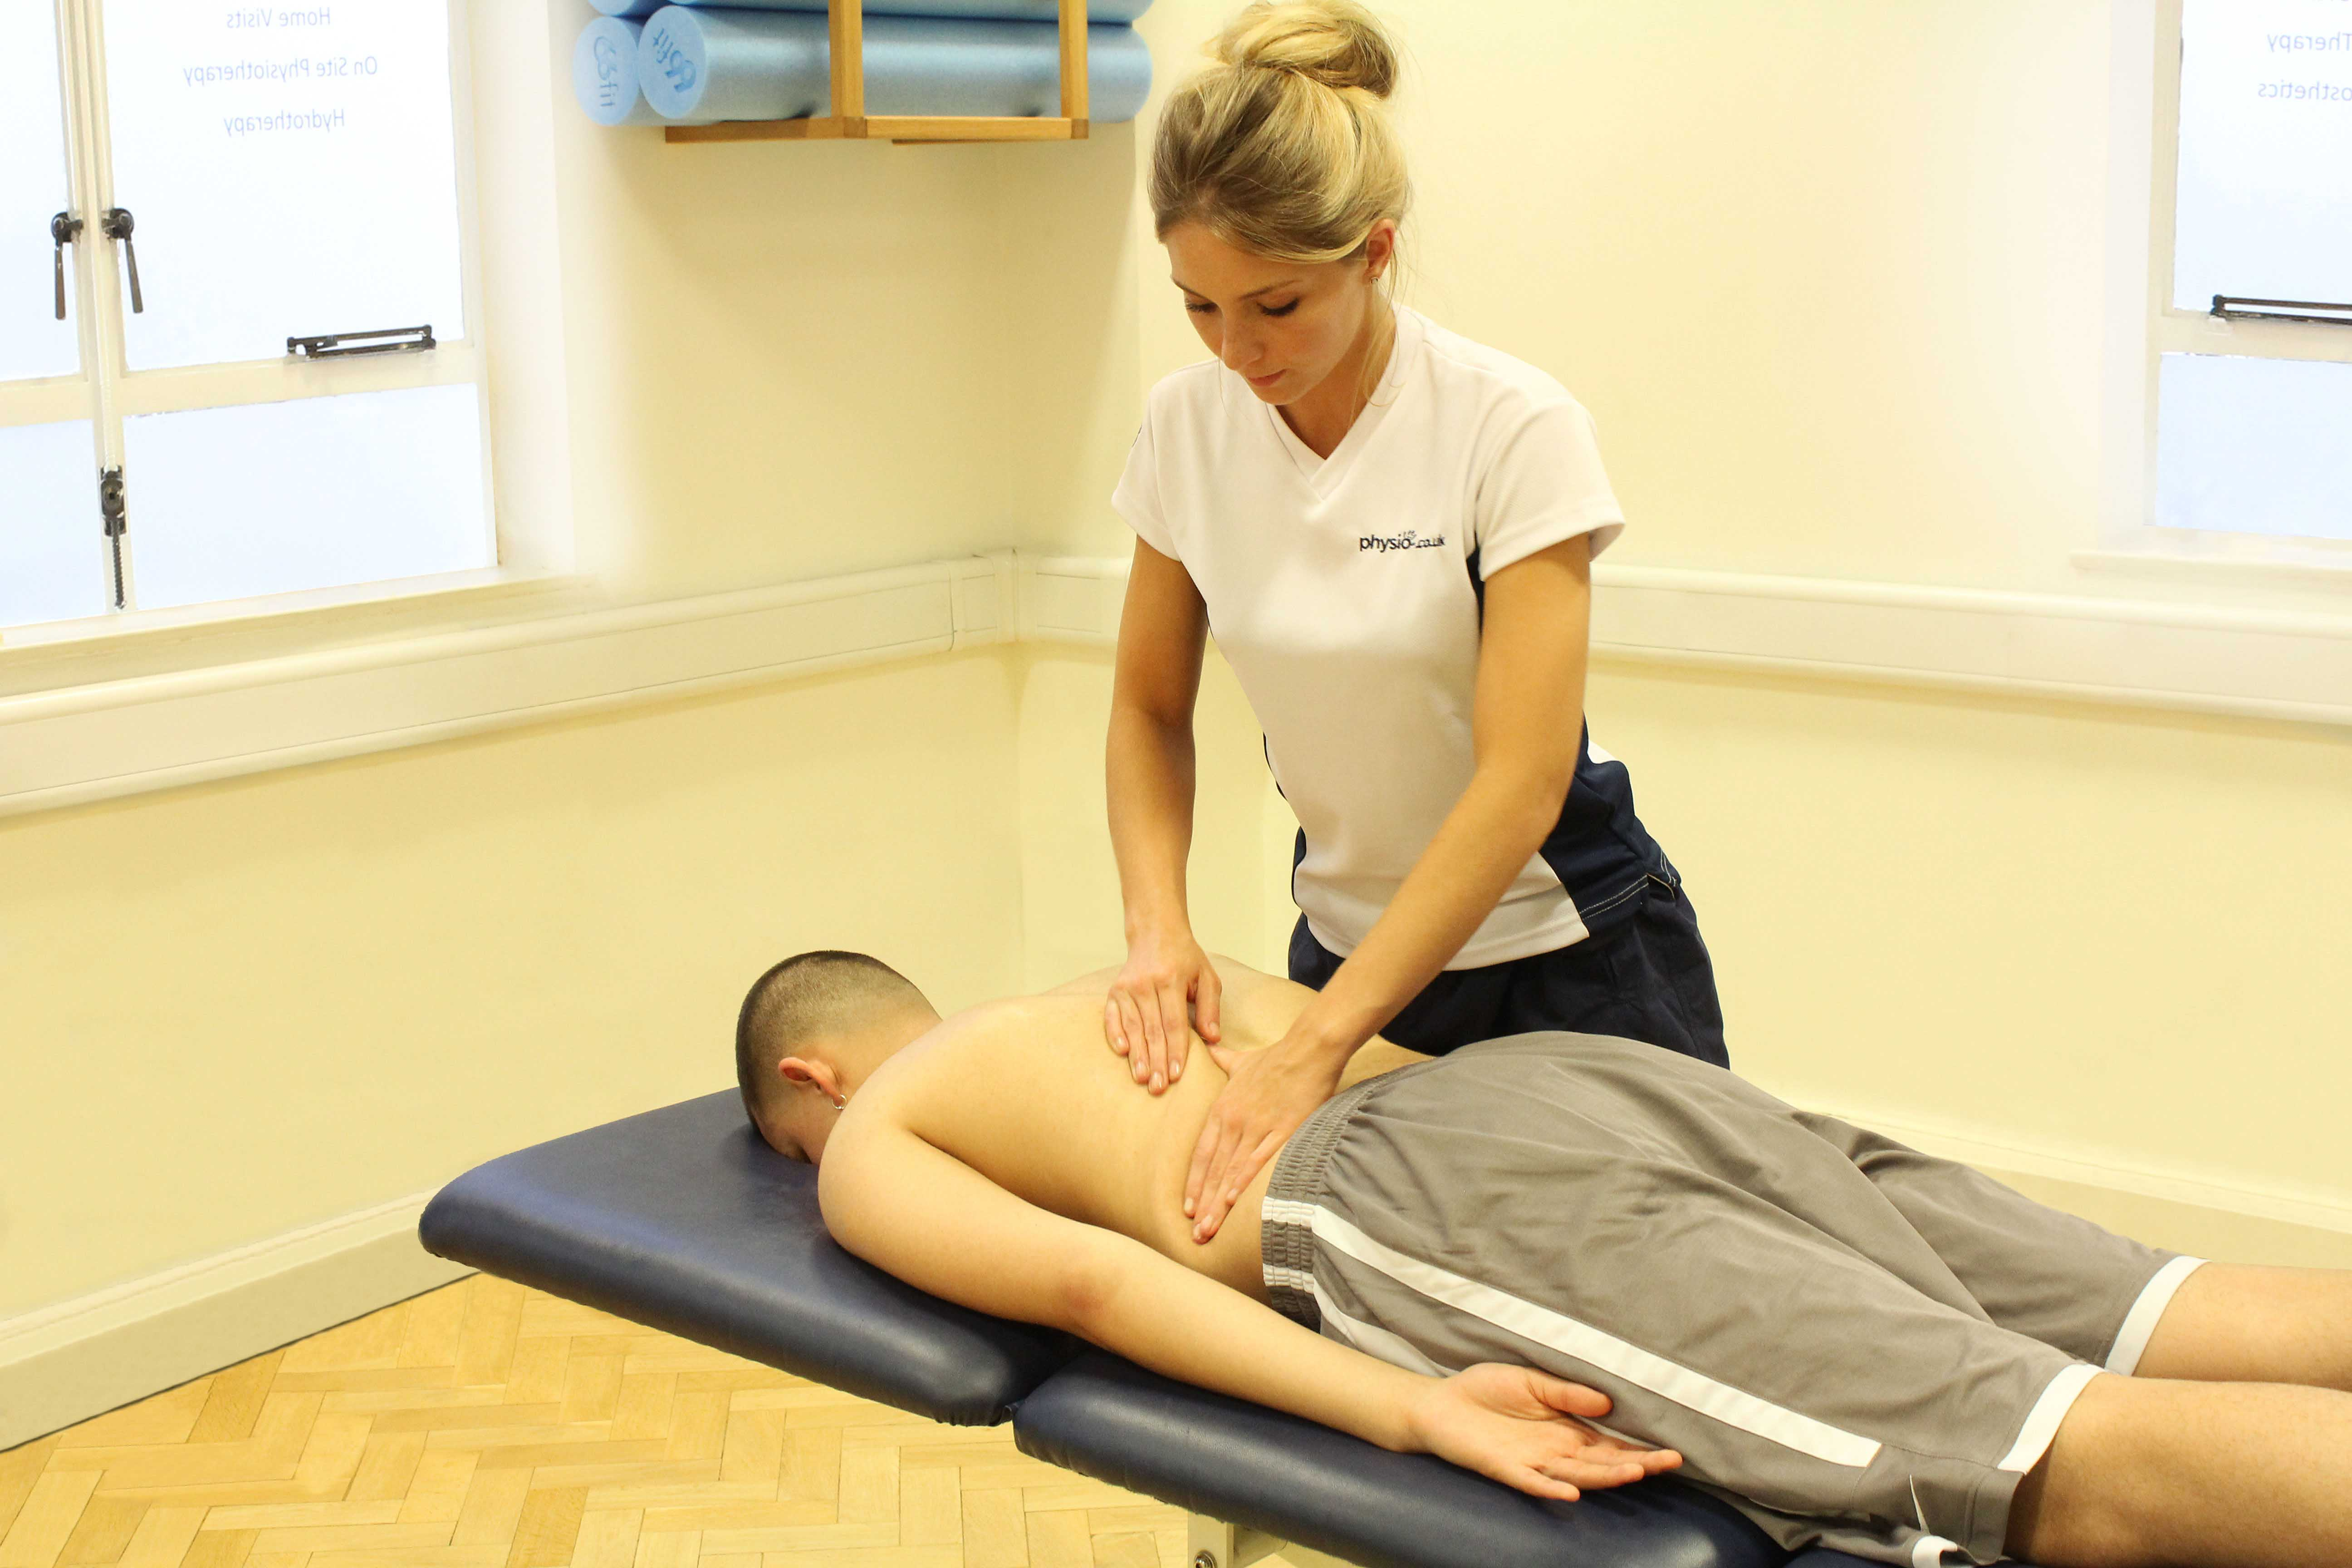 Soft tissue massage of the upper arms and shoulders following exercise to reduce muscle soreness